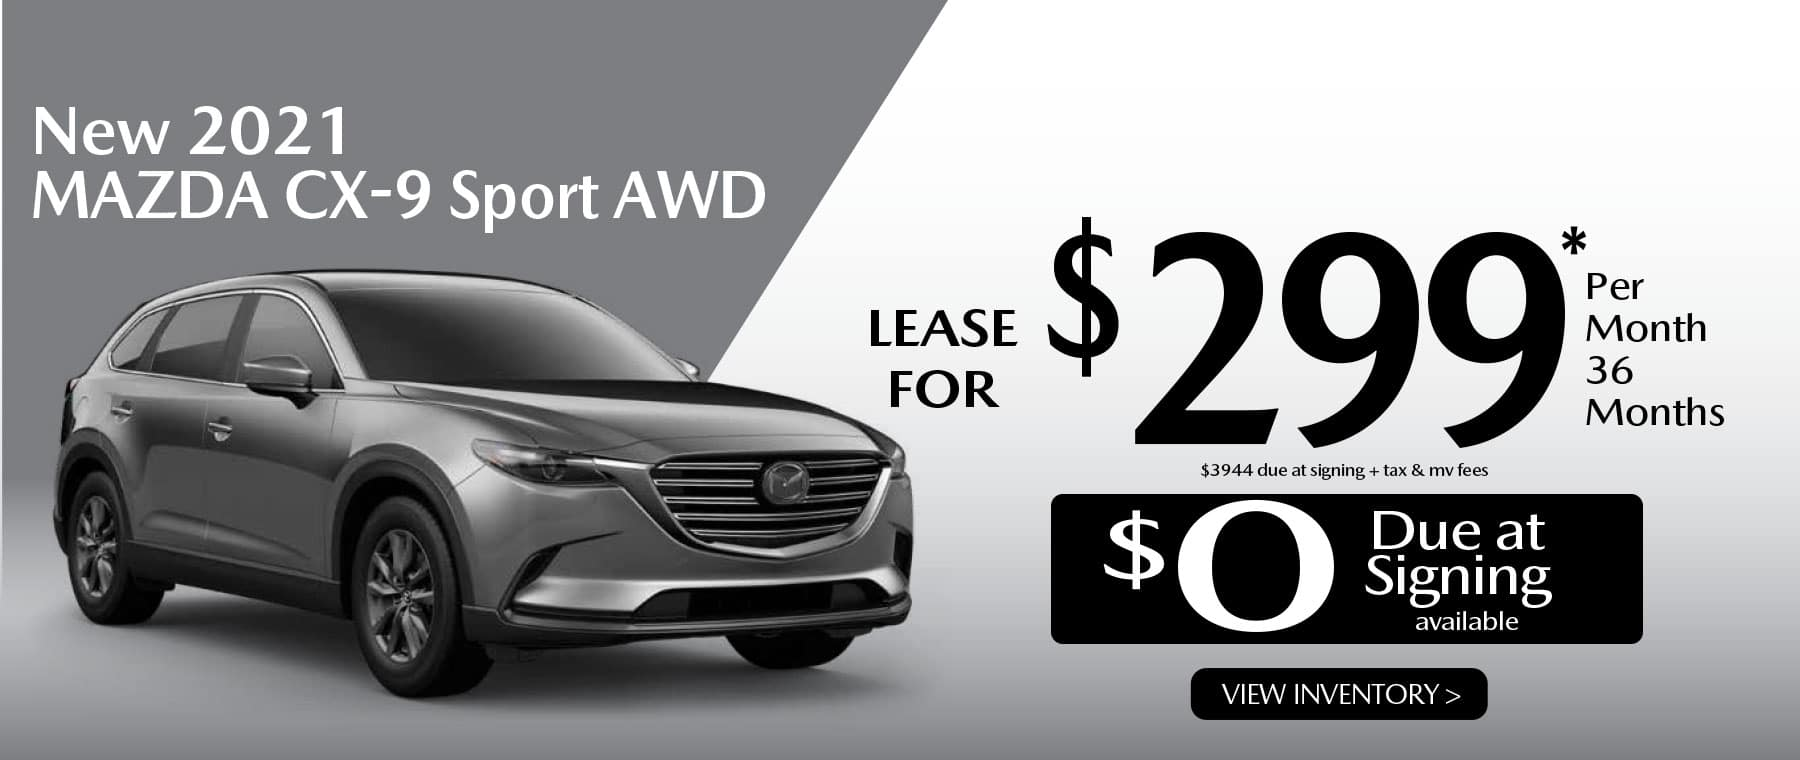 03 CX-9 hi New Lease Special Offer Garden City Mazda NY